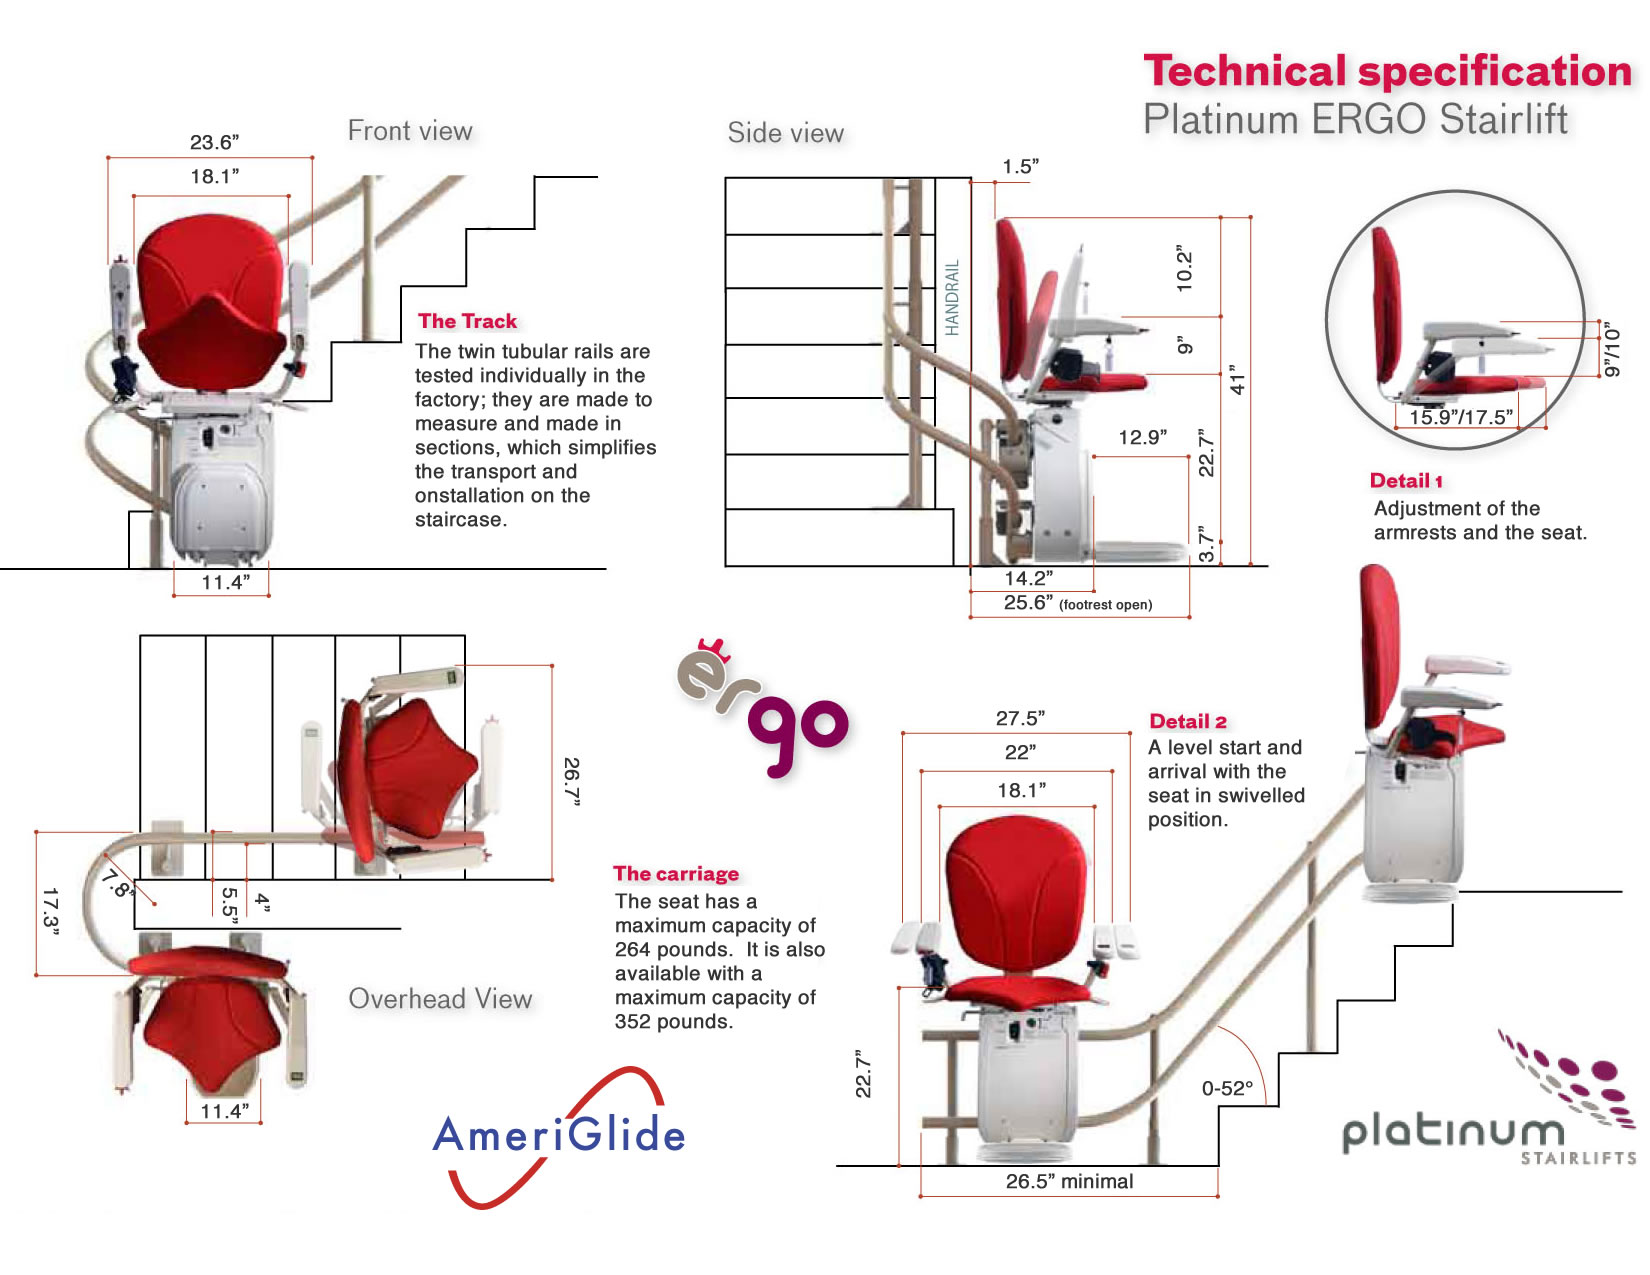 Ameriglide Stair Lifts Curved Lift. Ergo Seat Specifications Curved Lift Confirmation. Wiring. Ameriglide Stair Lift Chair Wiring Diagram At Scoala.co